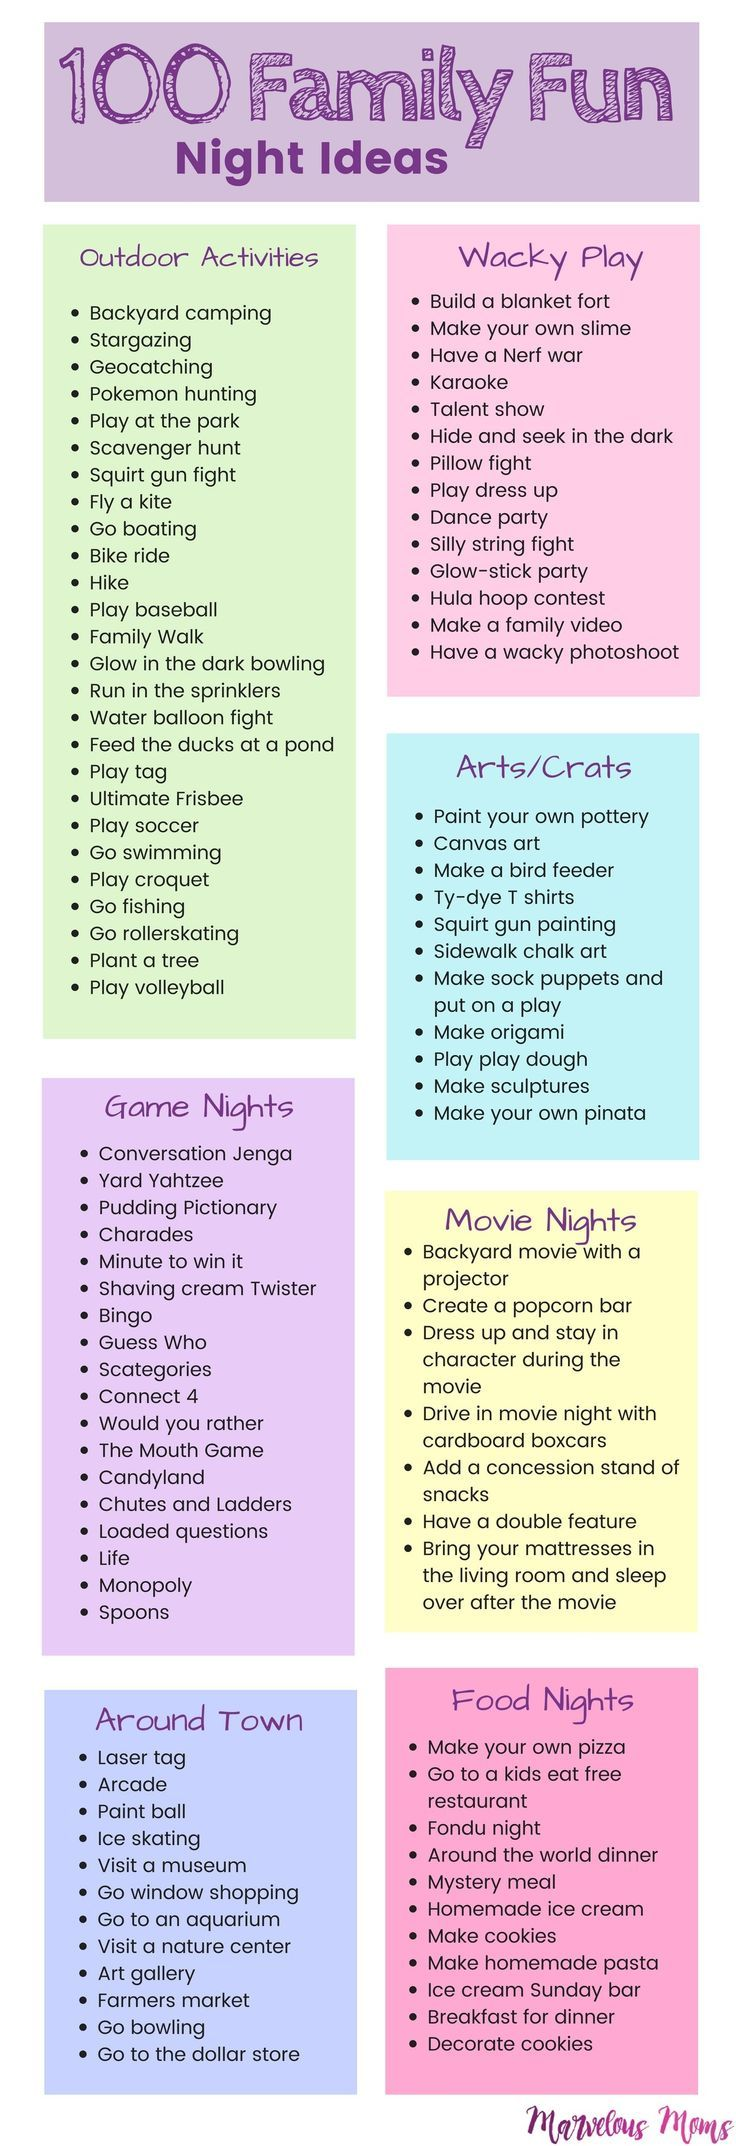 100 Family Fun Night Ideas | Kids activities | Playing with Kids | Activities for toddlers to teenagers | Free Family Nights | Out… | Parent newsletter | Pinterest | Family fun night, Parenting and Activities for kids